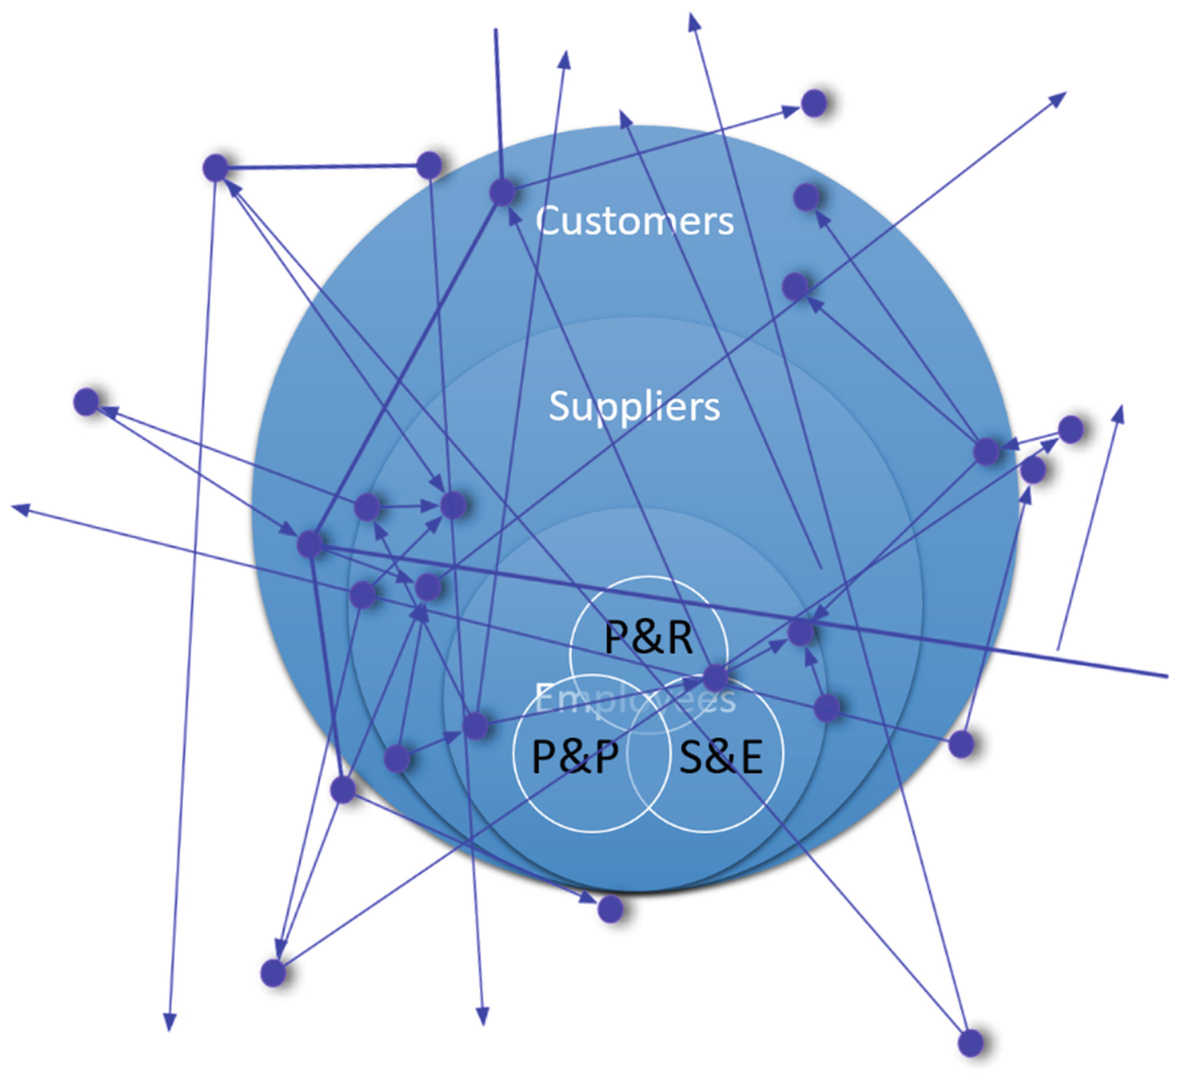 Leadership Development and Structure—From Egosystems to Ecosystems